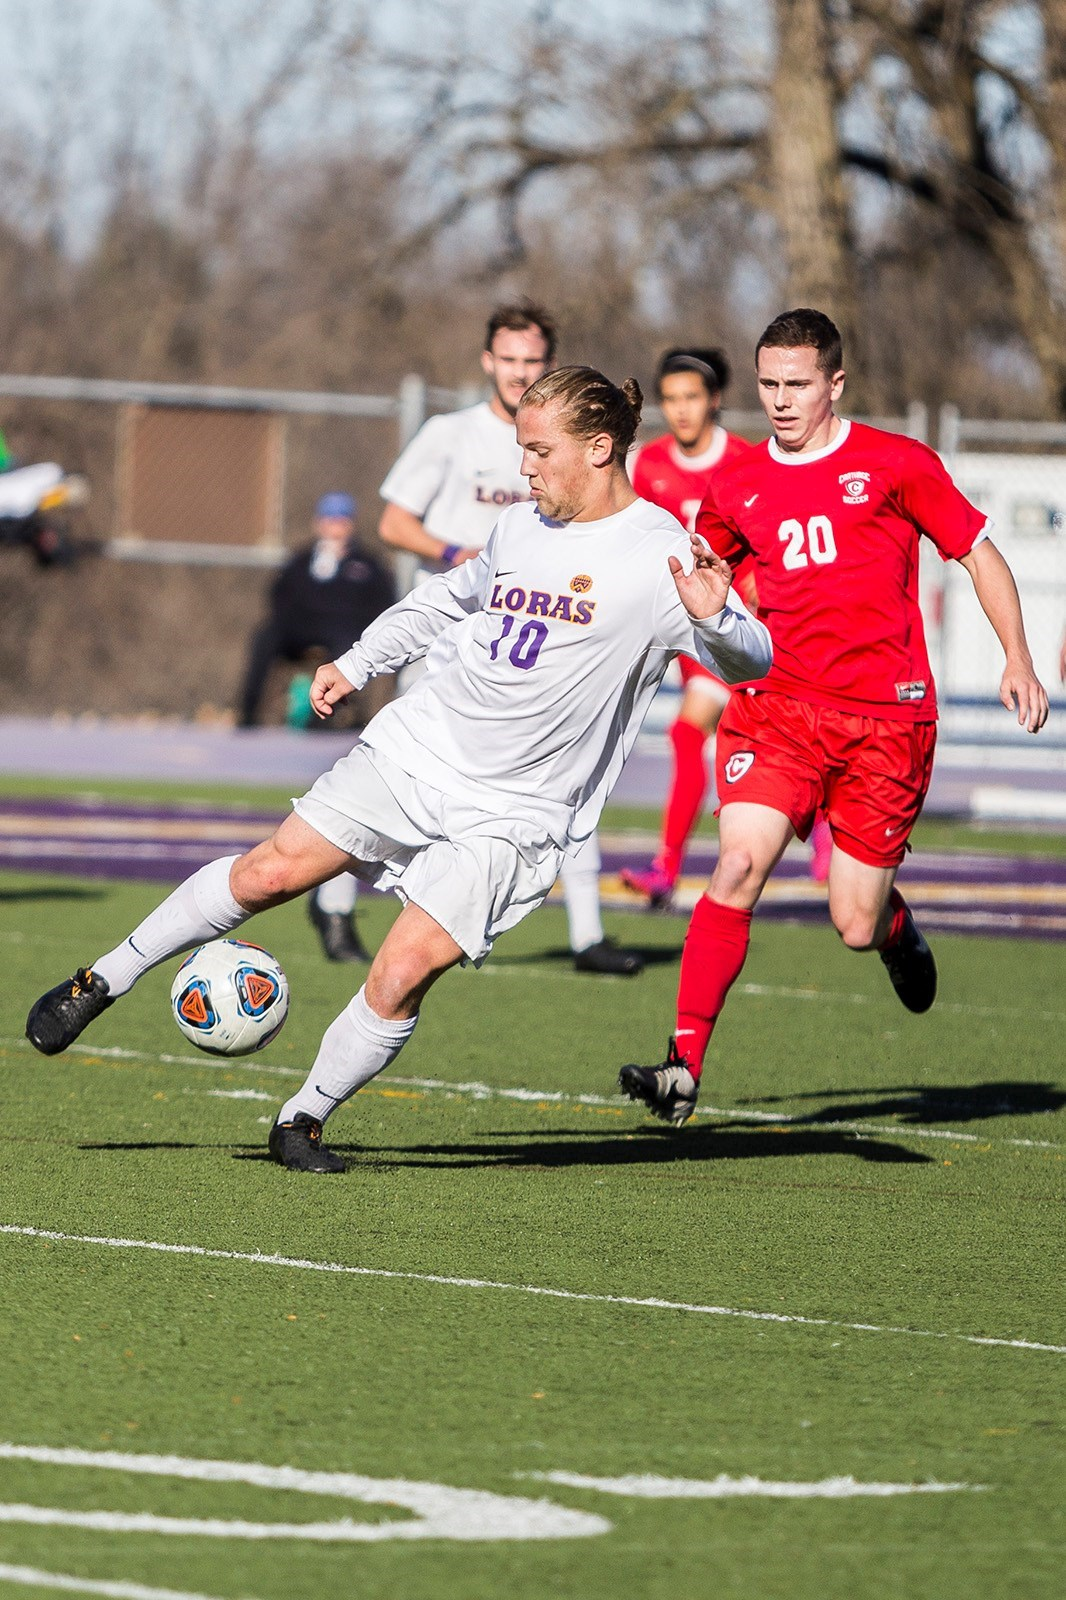 Richard Lenke - Men's Soccer - Loras College Athletics